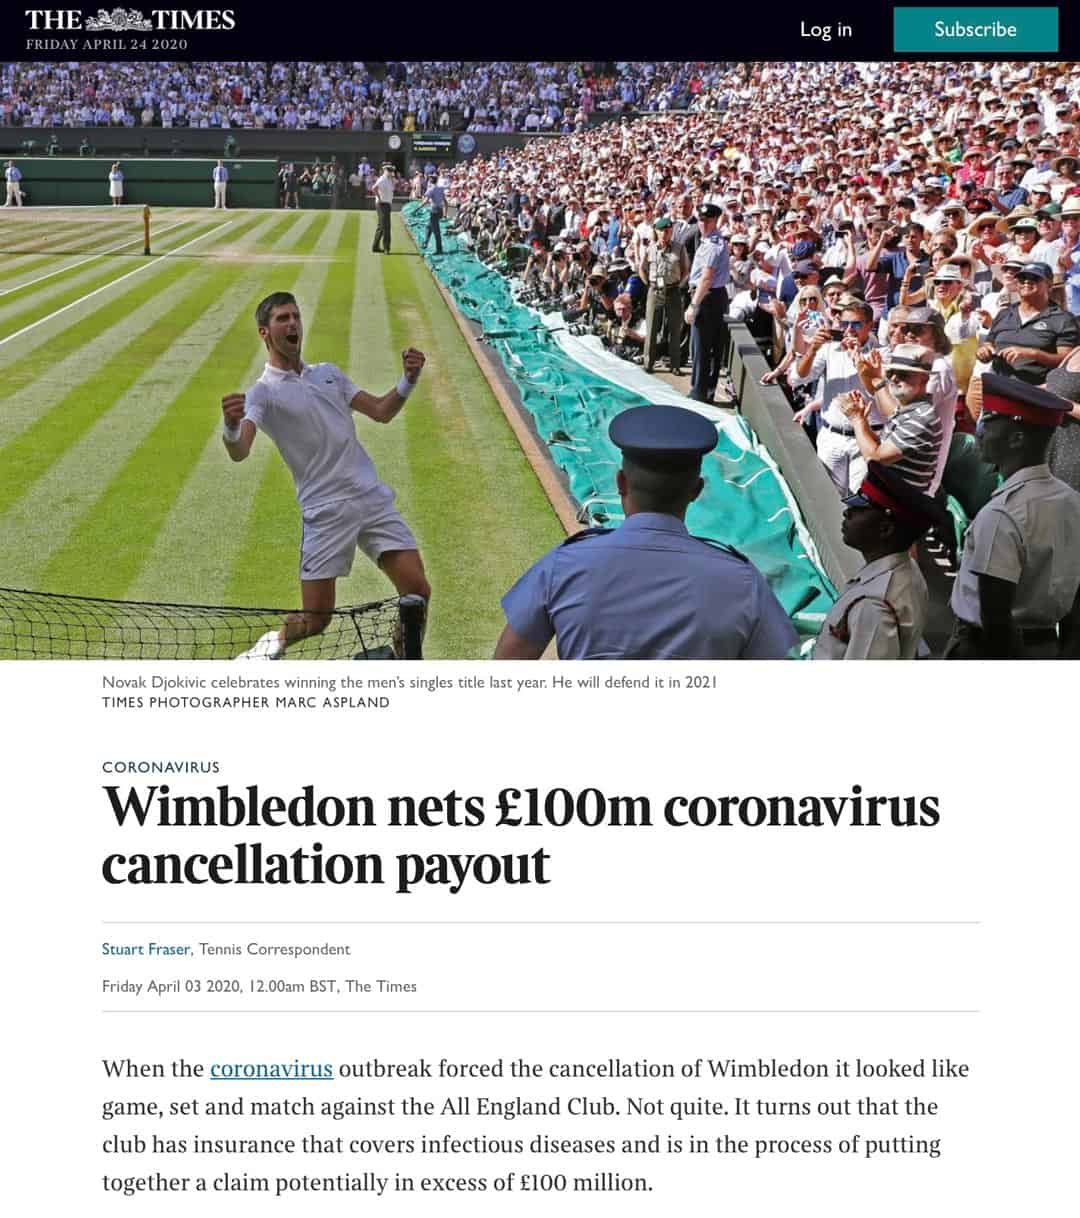 The Times - Wimbledon nets £100m coronavirus cancellation payout